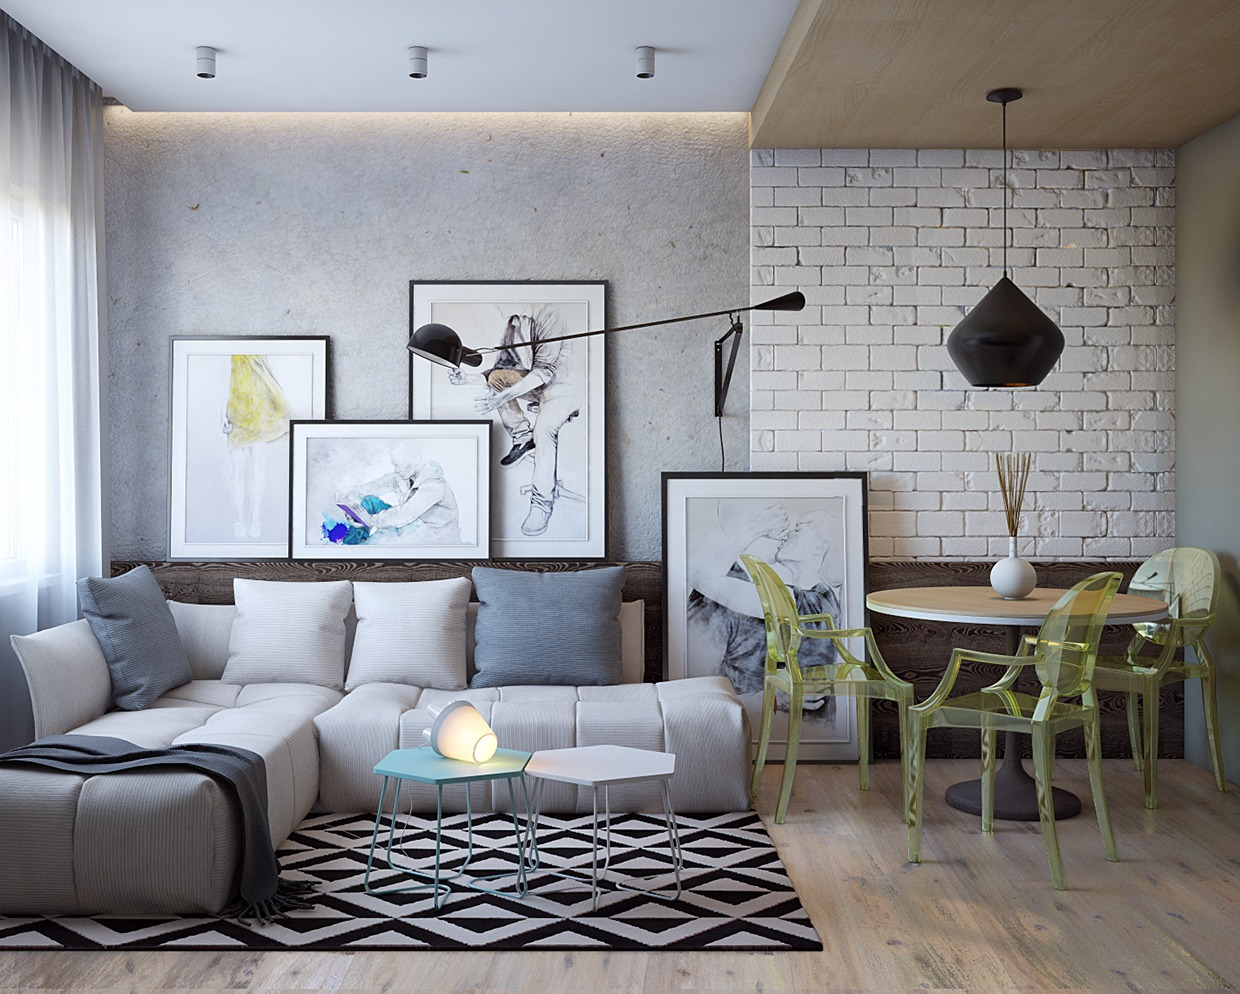 Living Room Apartment Design Super Tiny Apartment Design Ideas With A Great Layout Roohome